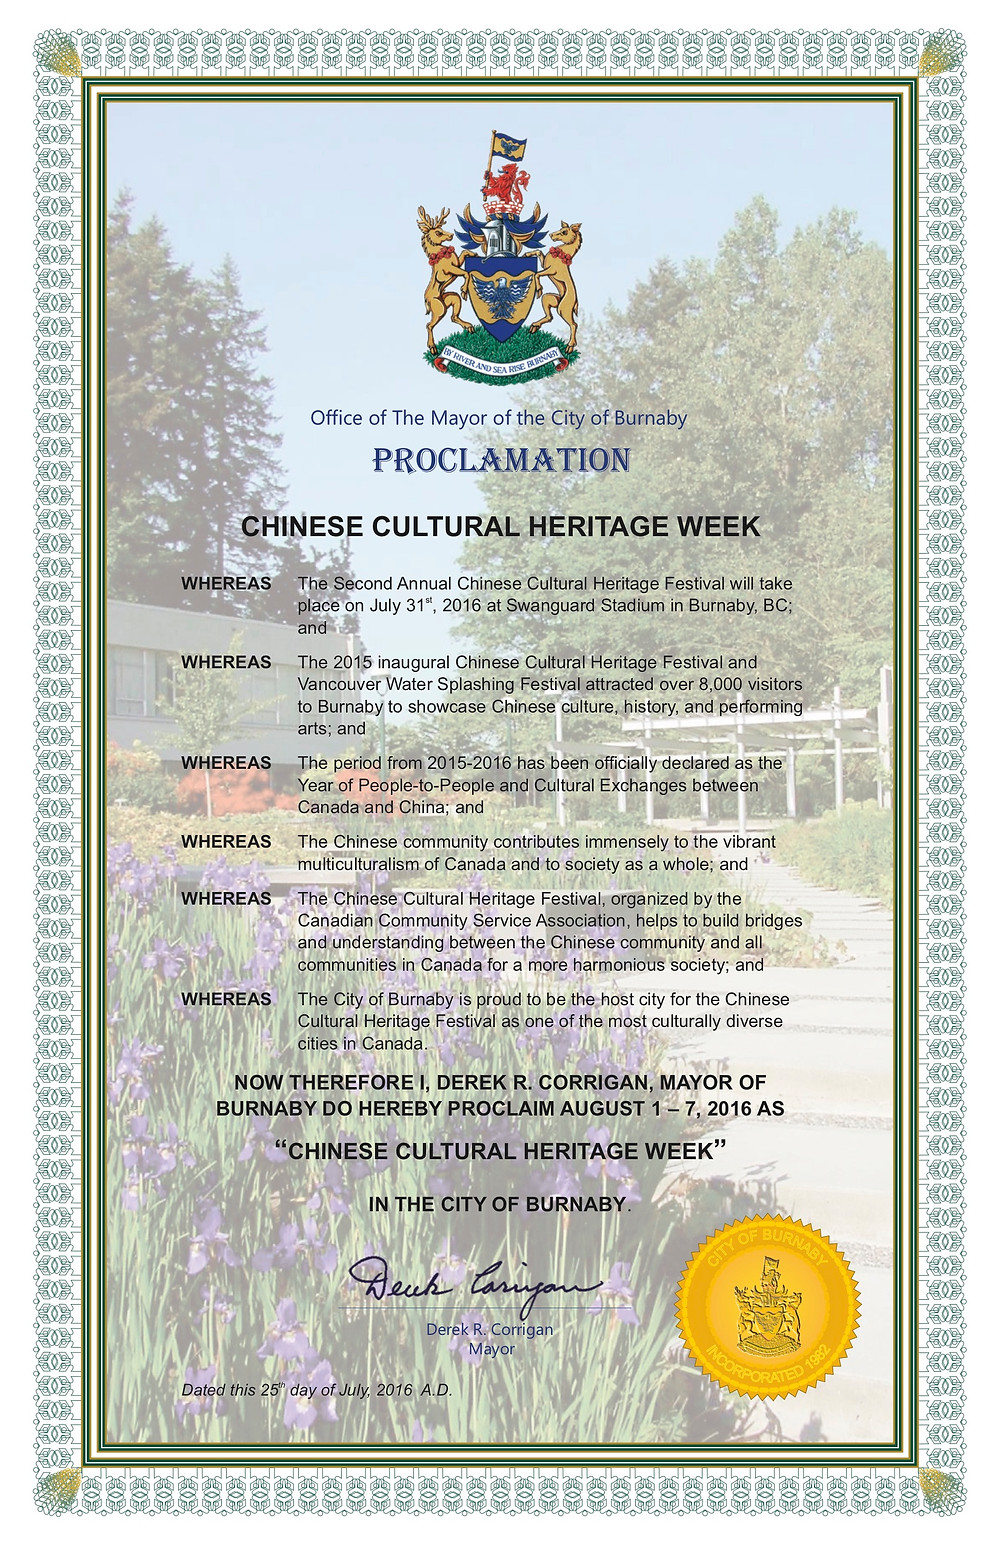 Chinese Cultural Heritage Week Proclamation